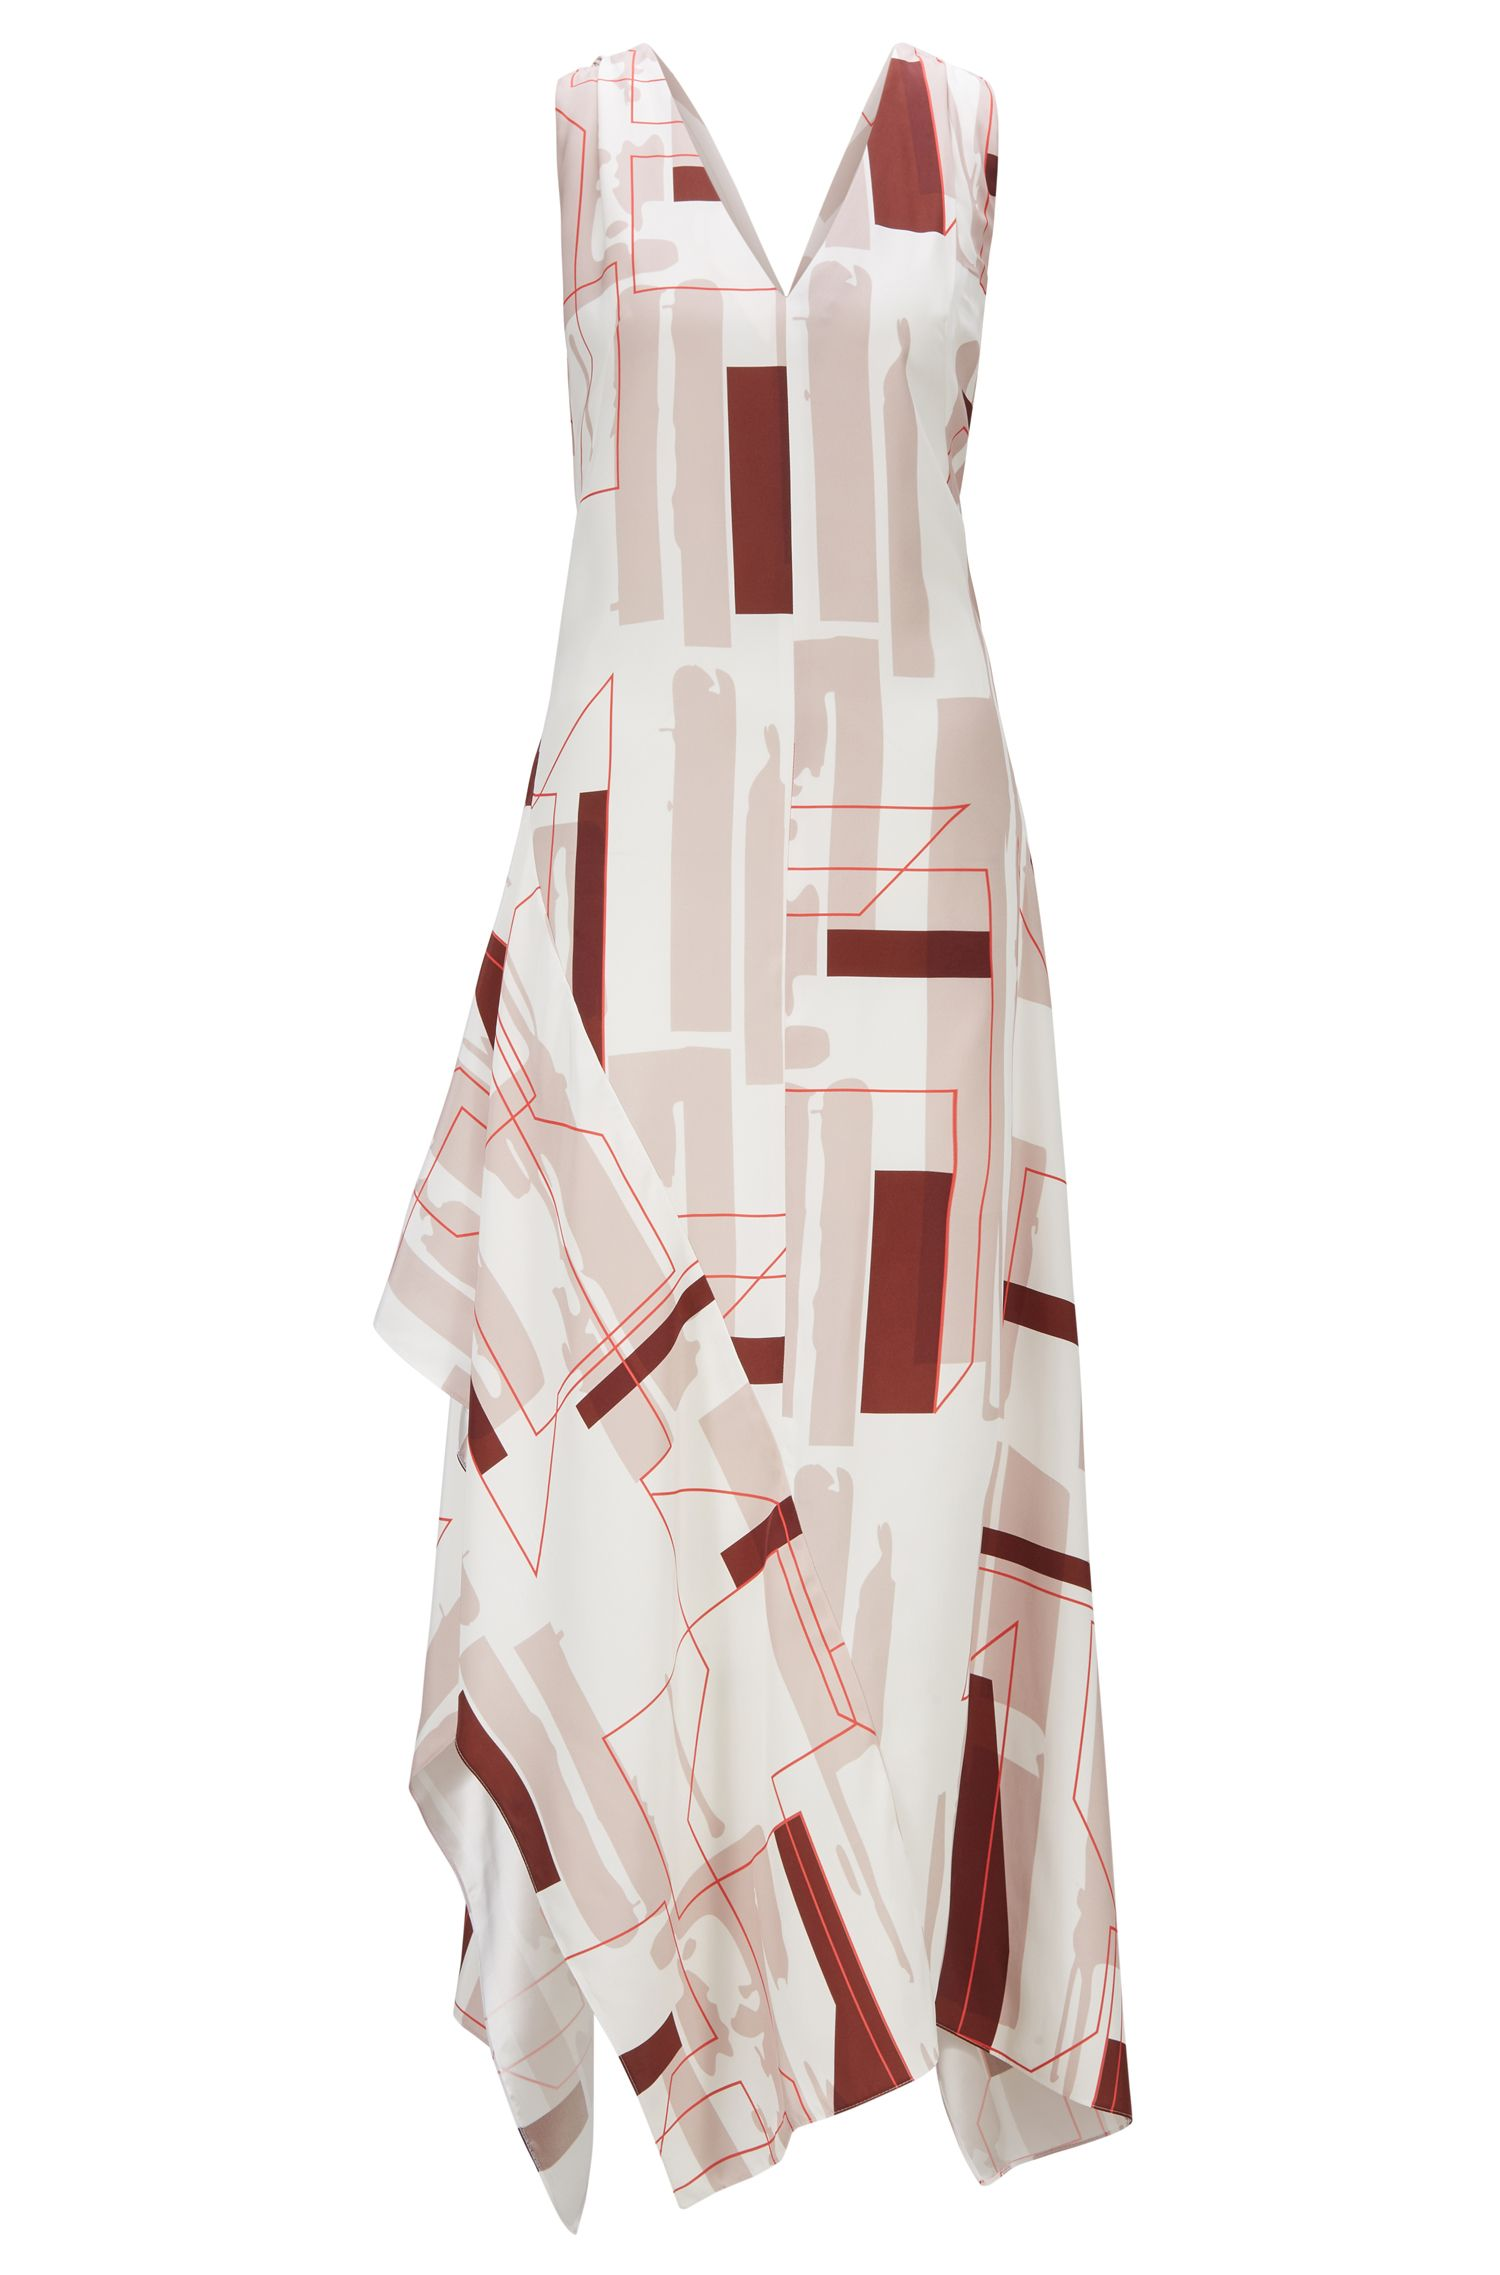 Fashion Show low-cut V-neck dress with geometric print, Patterned